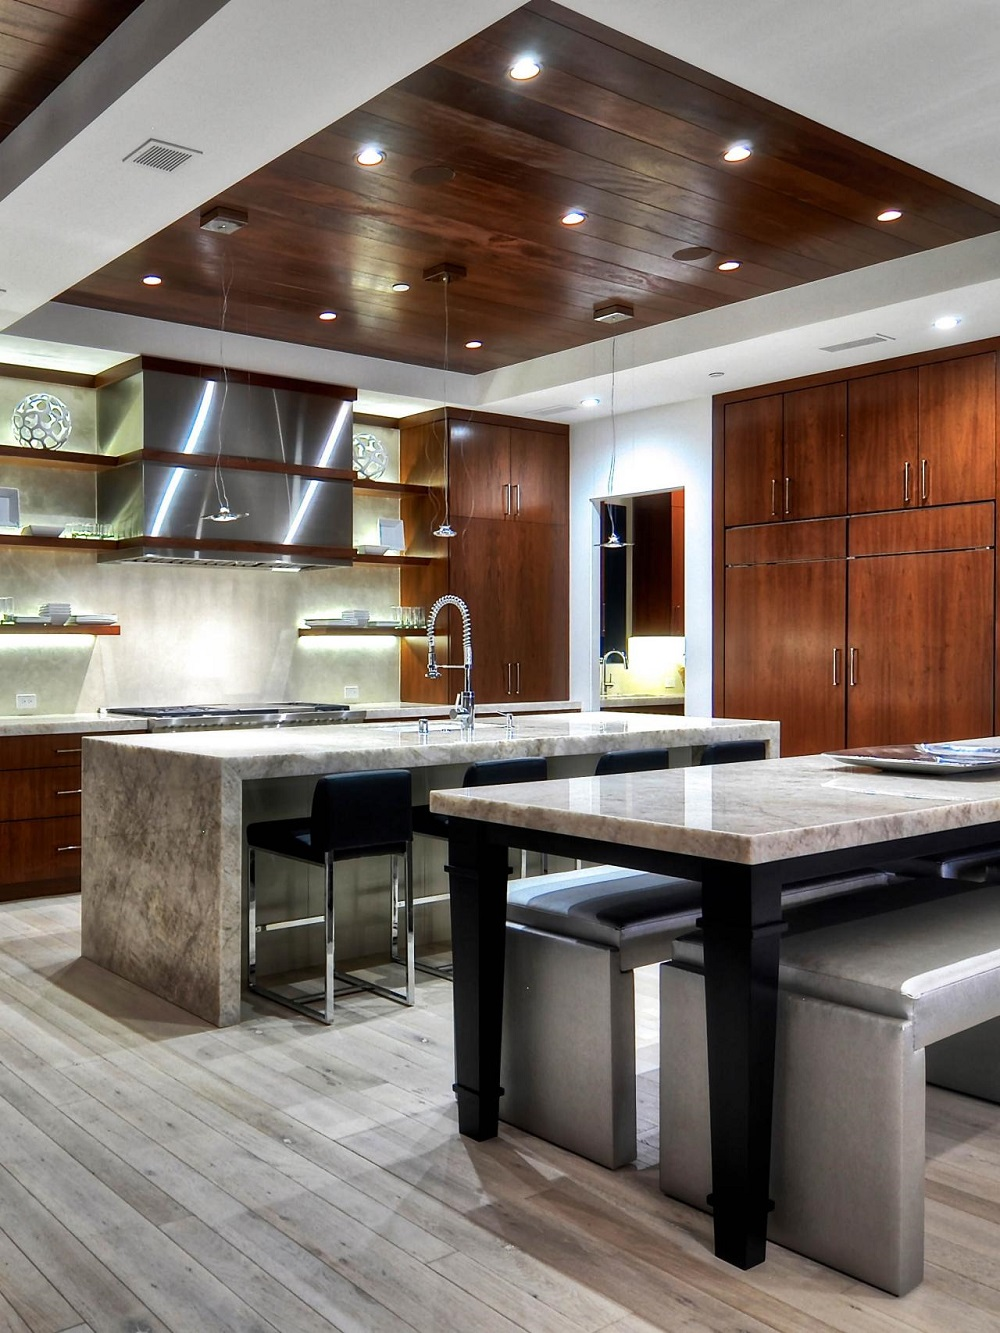 t3 Great ideas for recessed ceiling lights that could inspire you